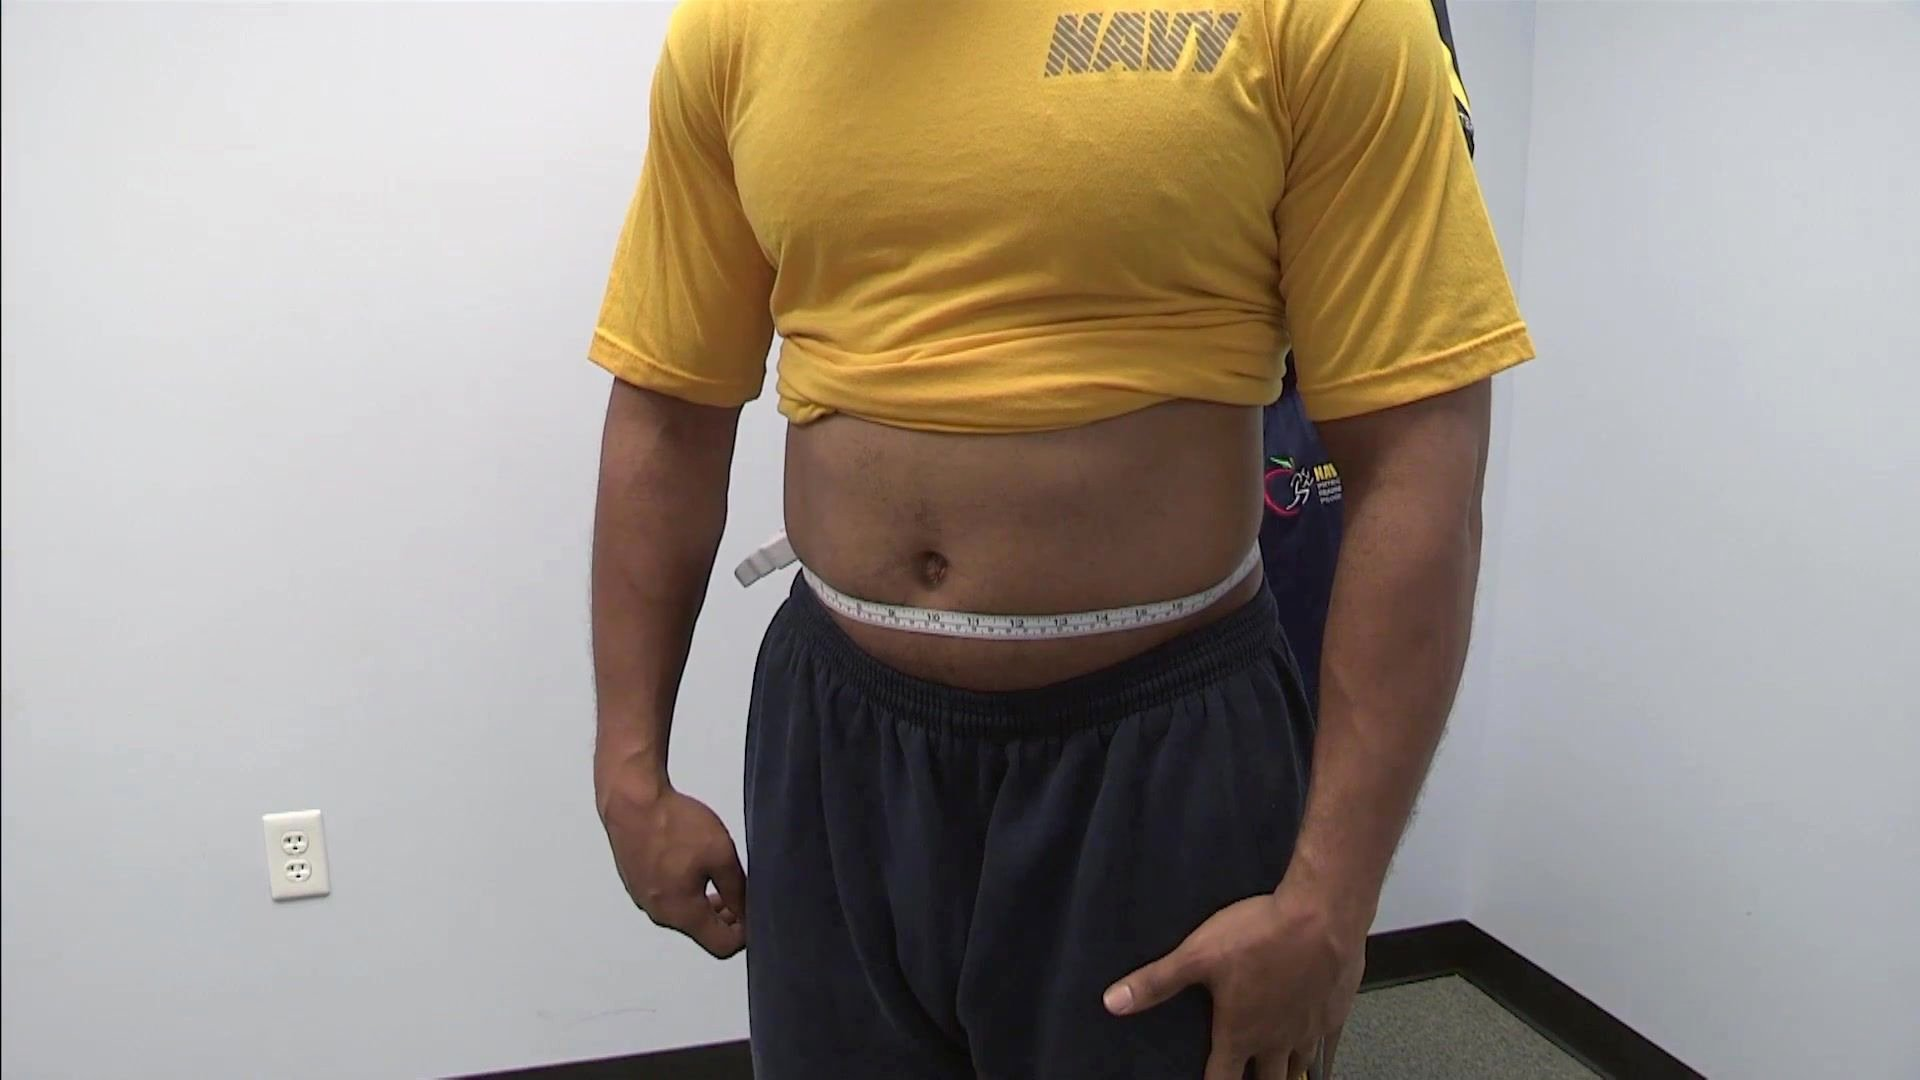 Army Weight and Tape Lovely Body Fat Measurement System In the Military